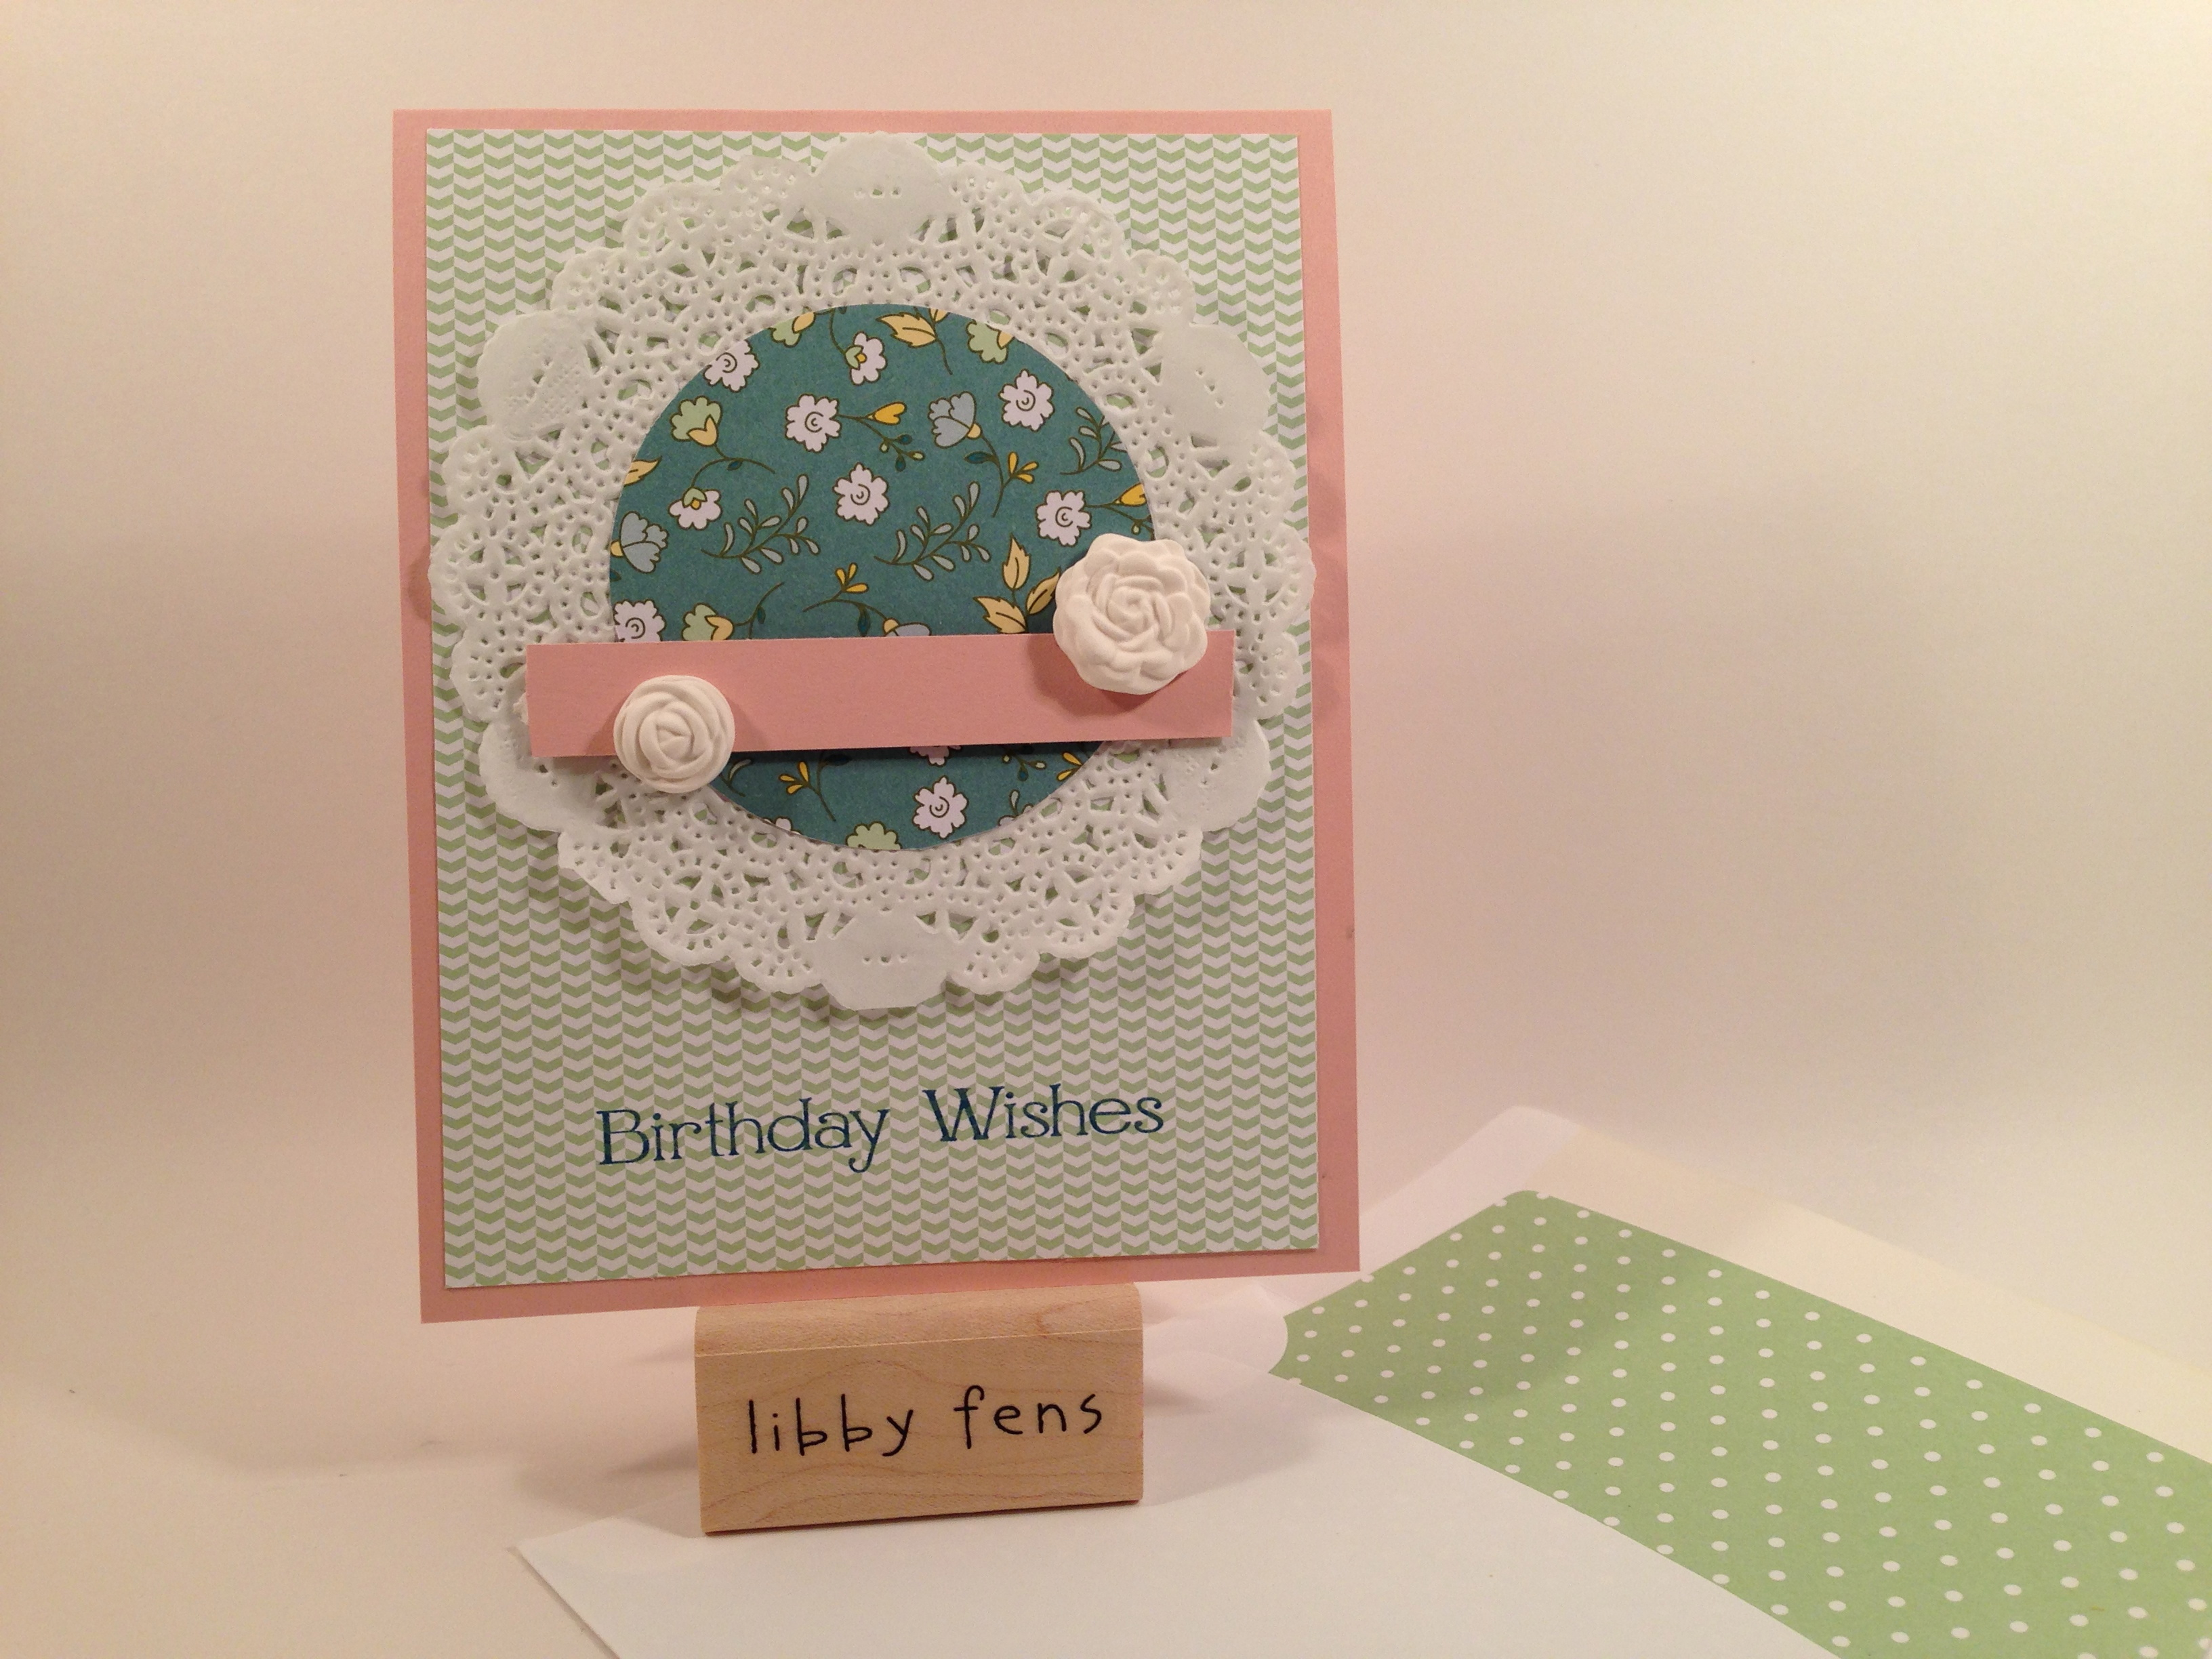 libbystamps, Four You, All Bloom DSP, Simply Pressed Clay